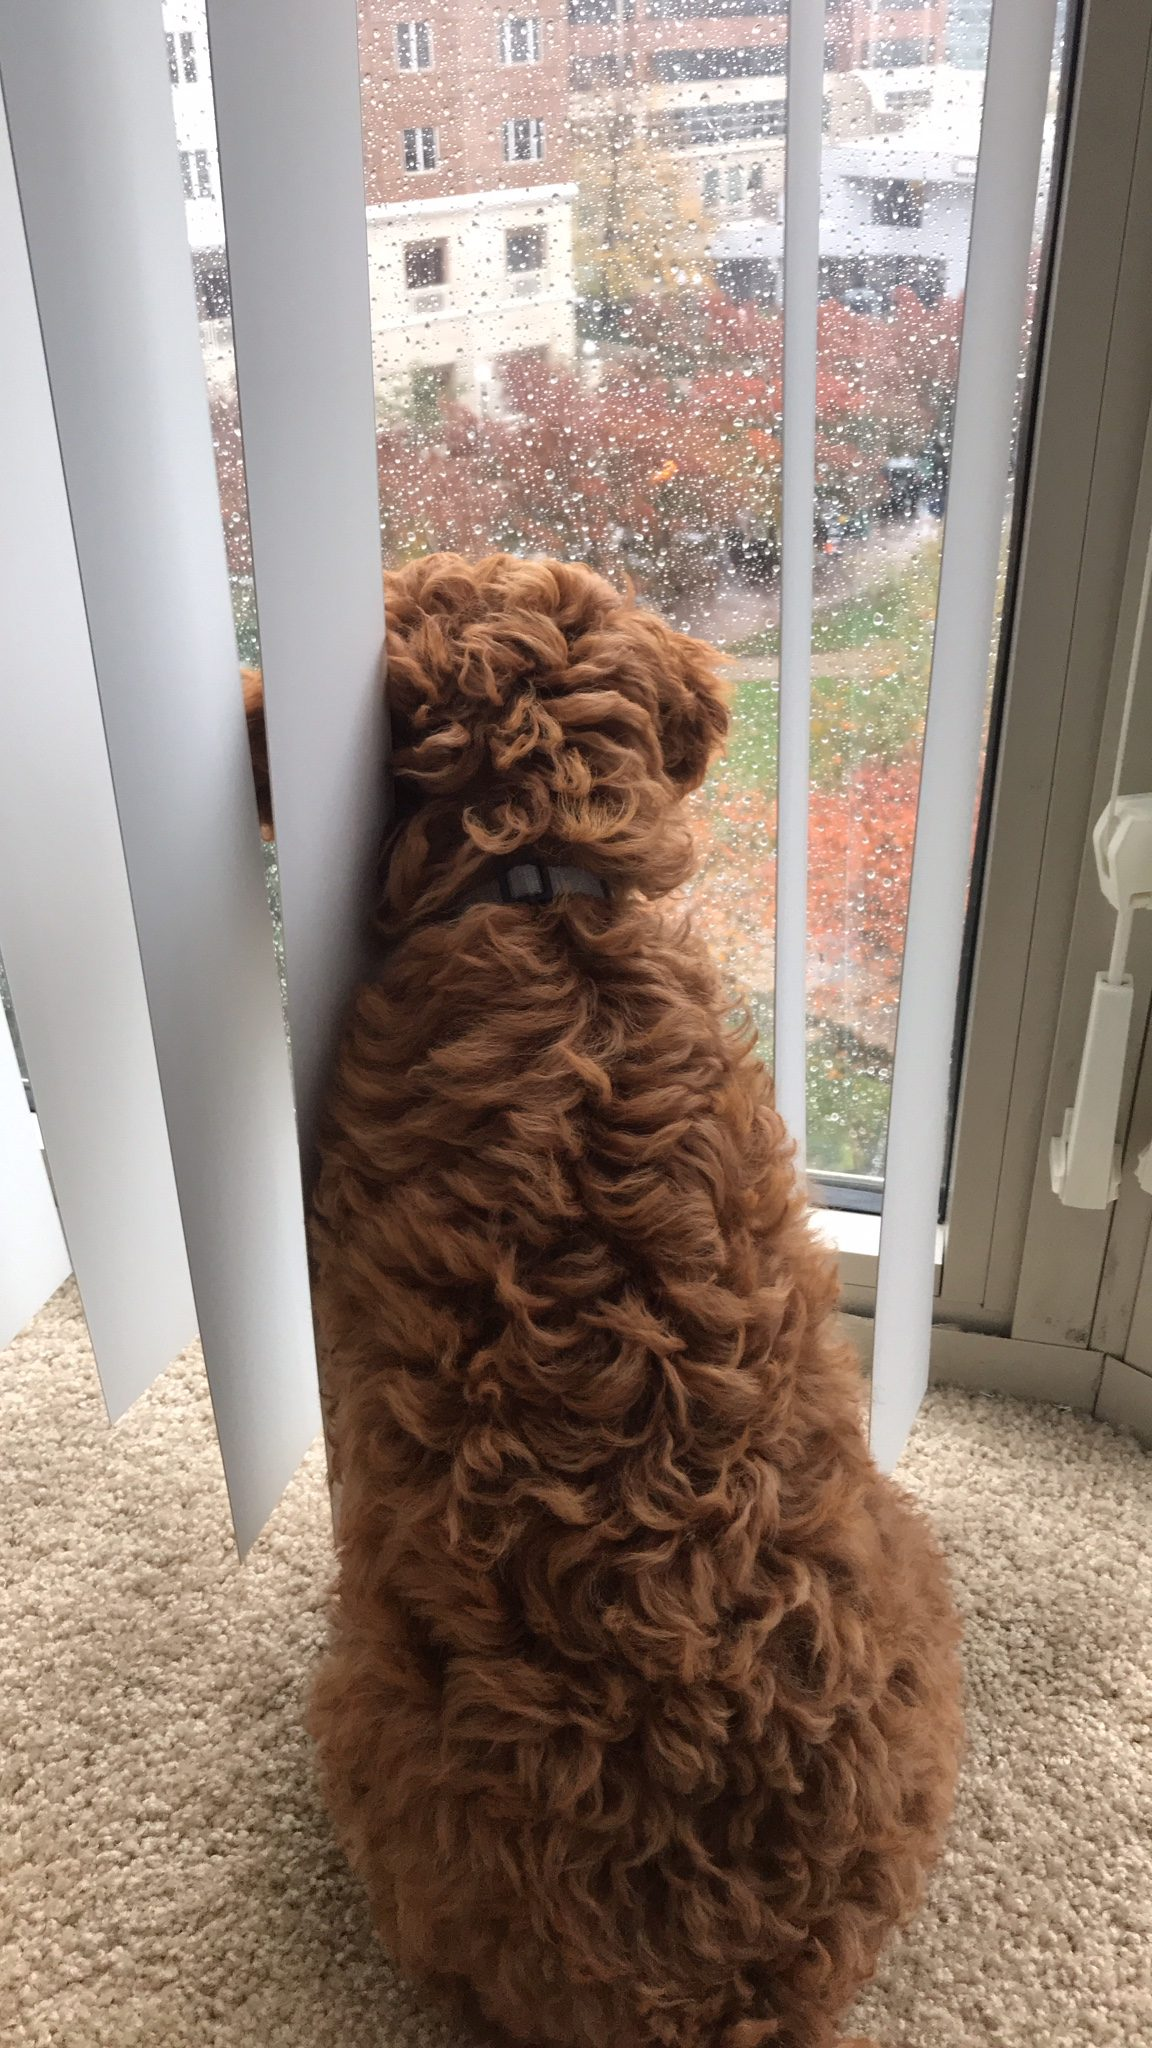 Cavapoo Puppy looking out window